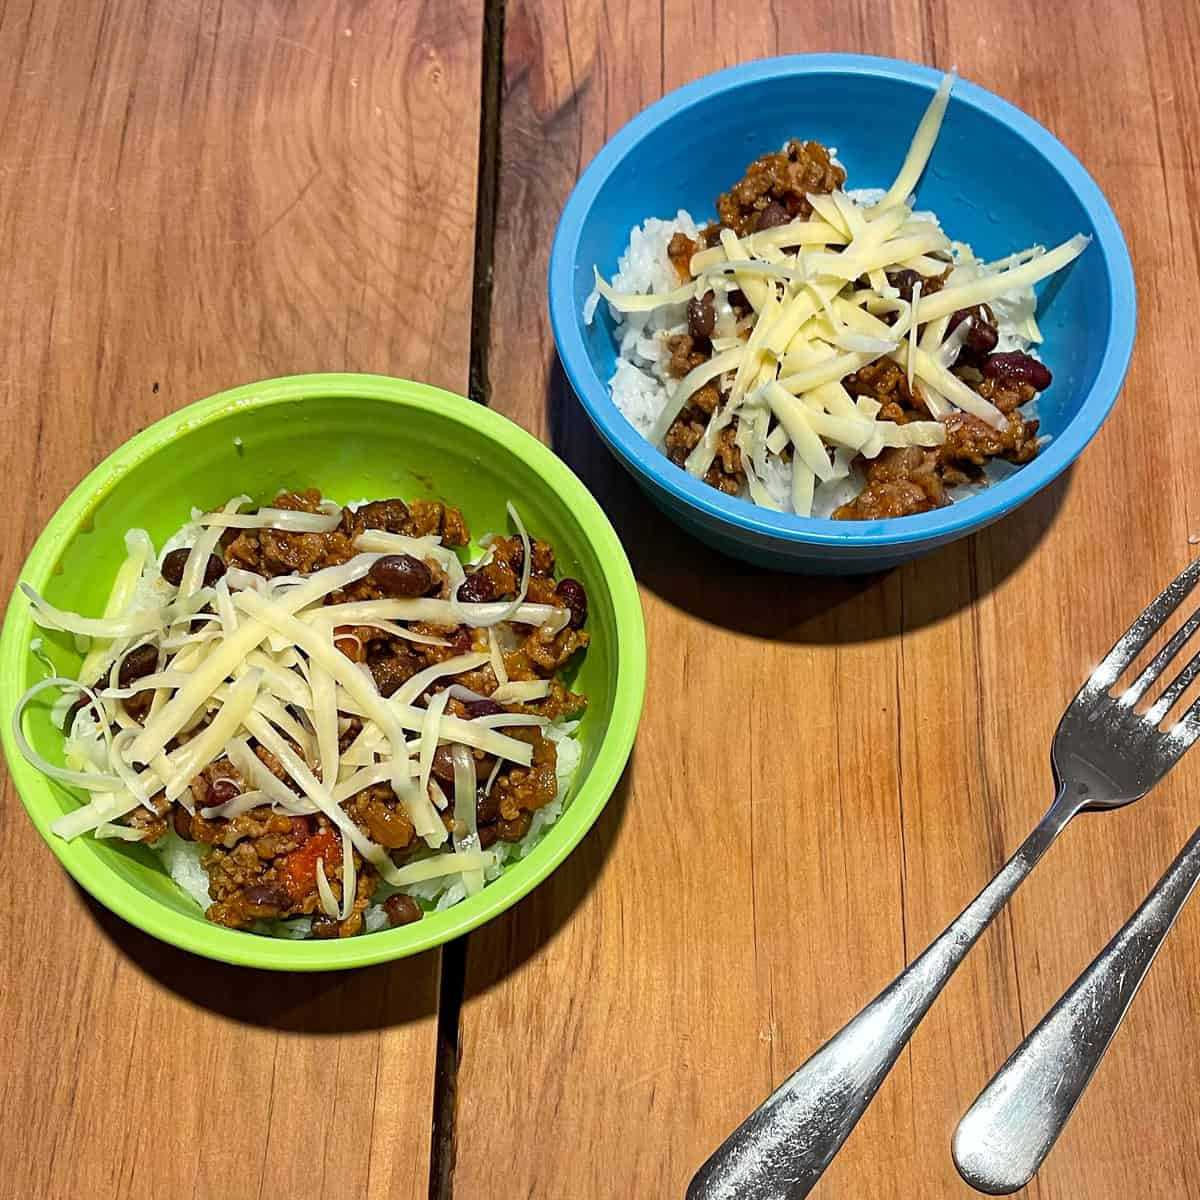 Kids' servings of chilli in a small green and blue bowl.